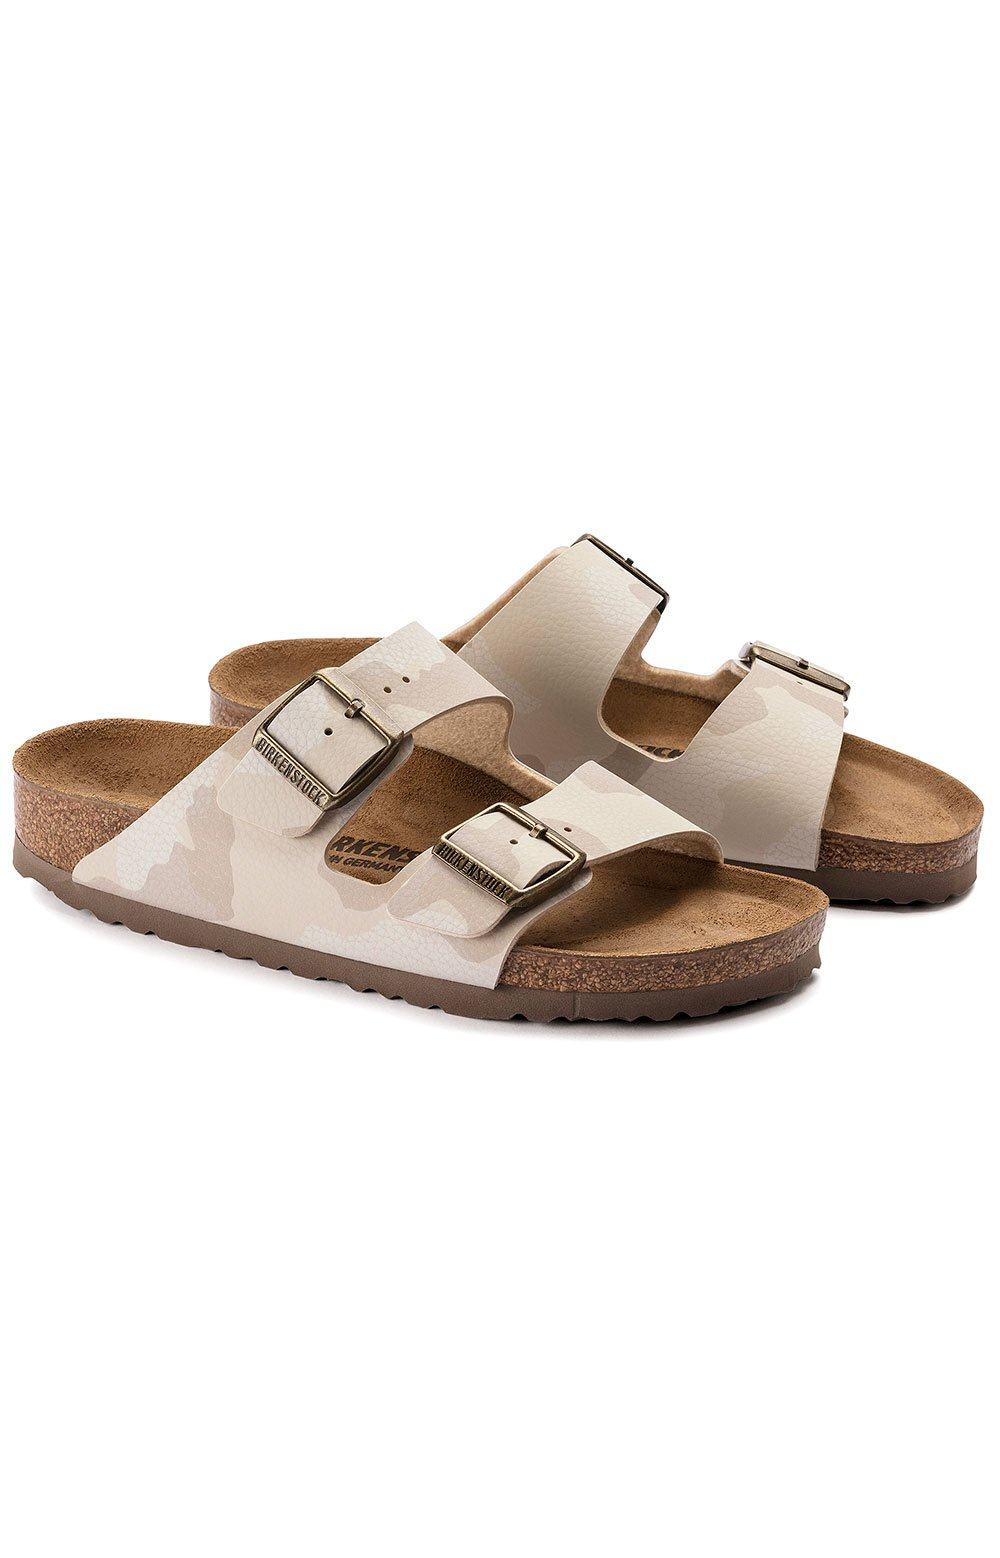 (1016791) Arizona Sandals - Desert Soil Camo Sand